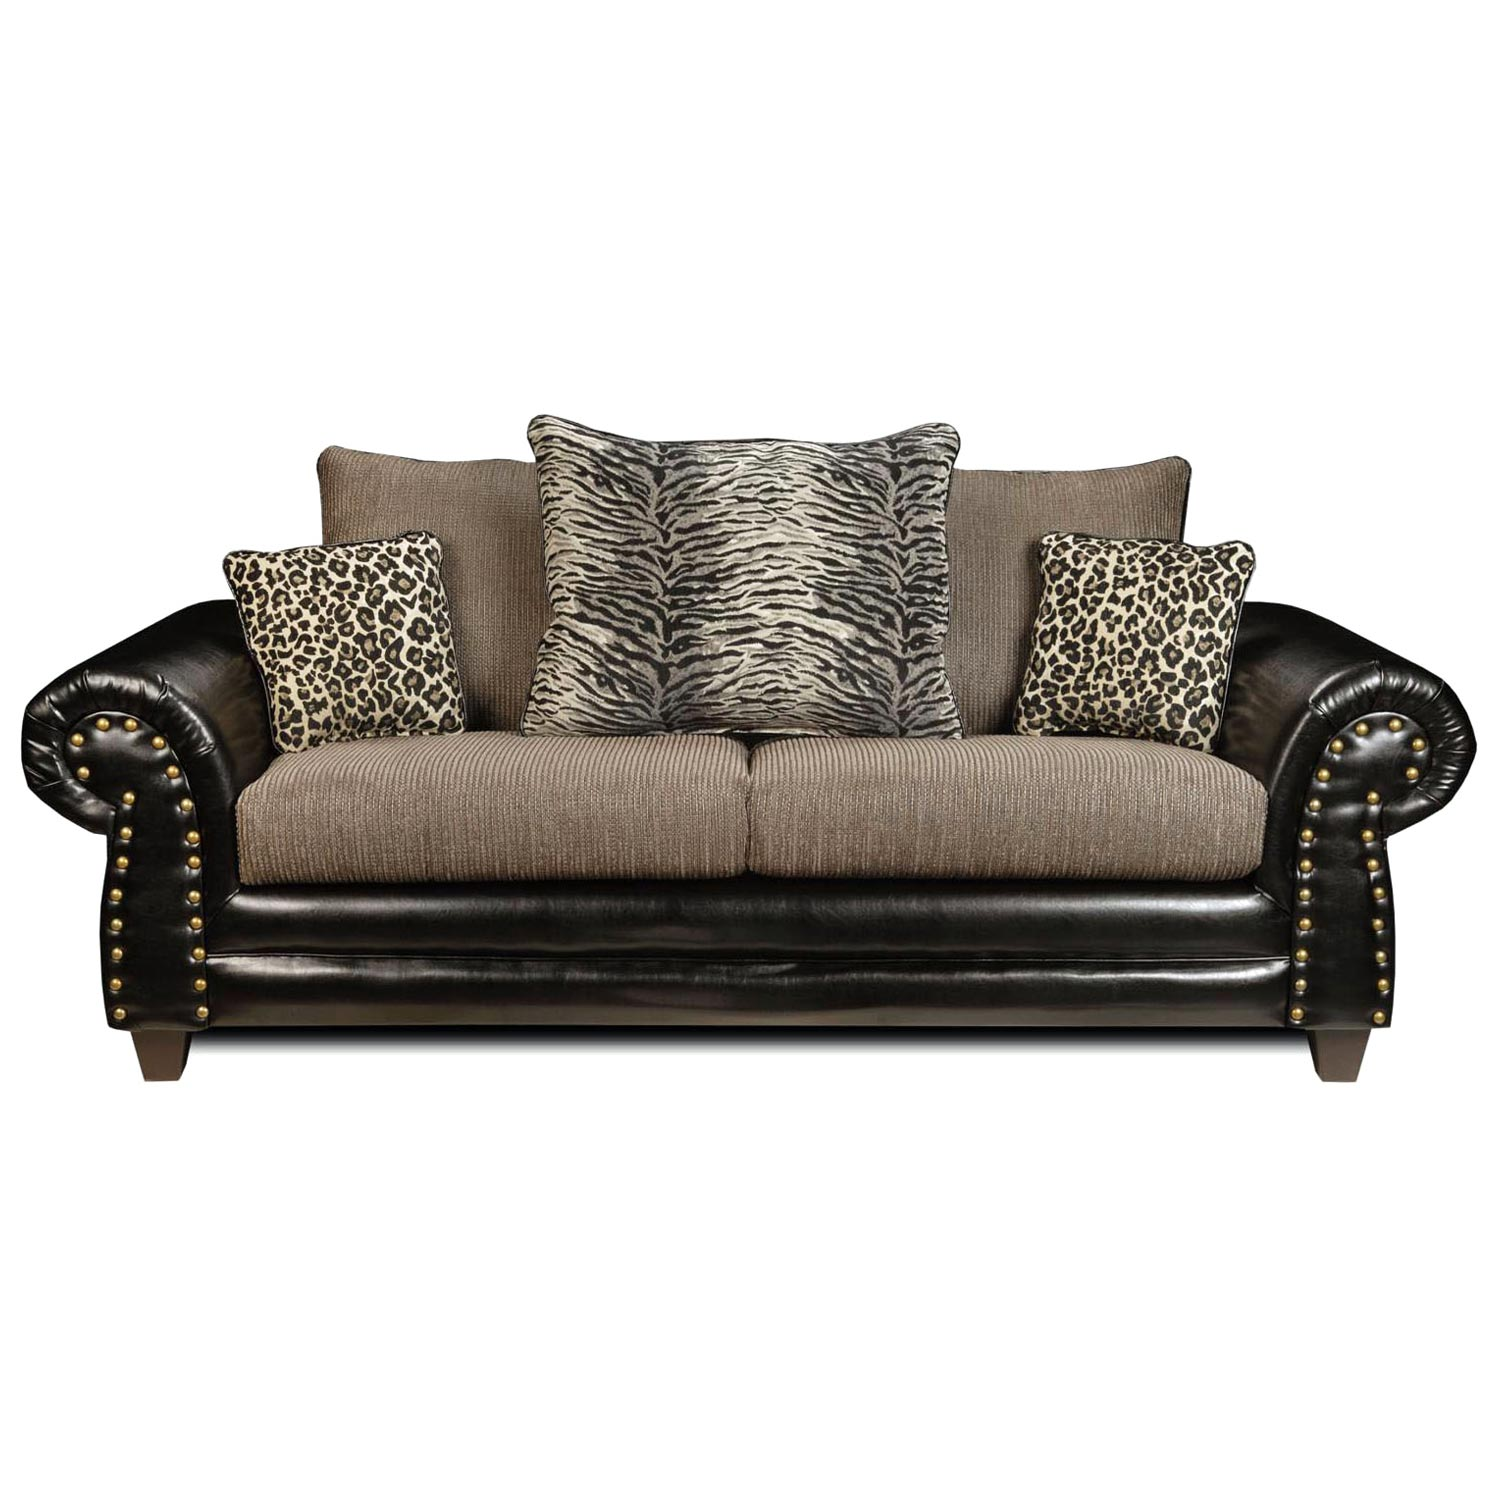 Tiger Print Sofa 28 Images Colbie Transitional Loveseat Leopard Tiger Print 103 Best Images